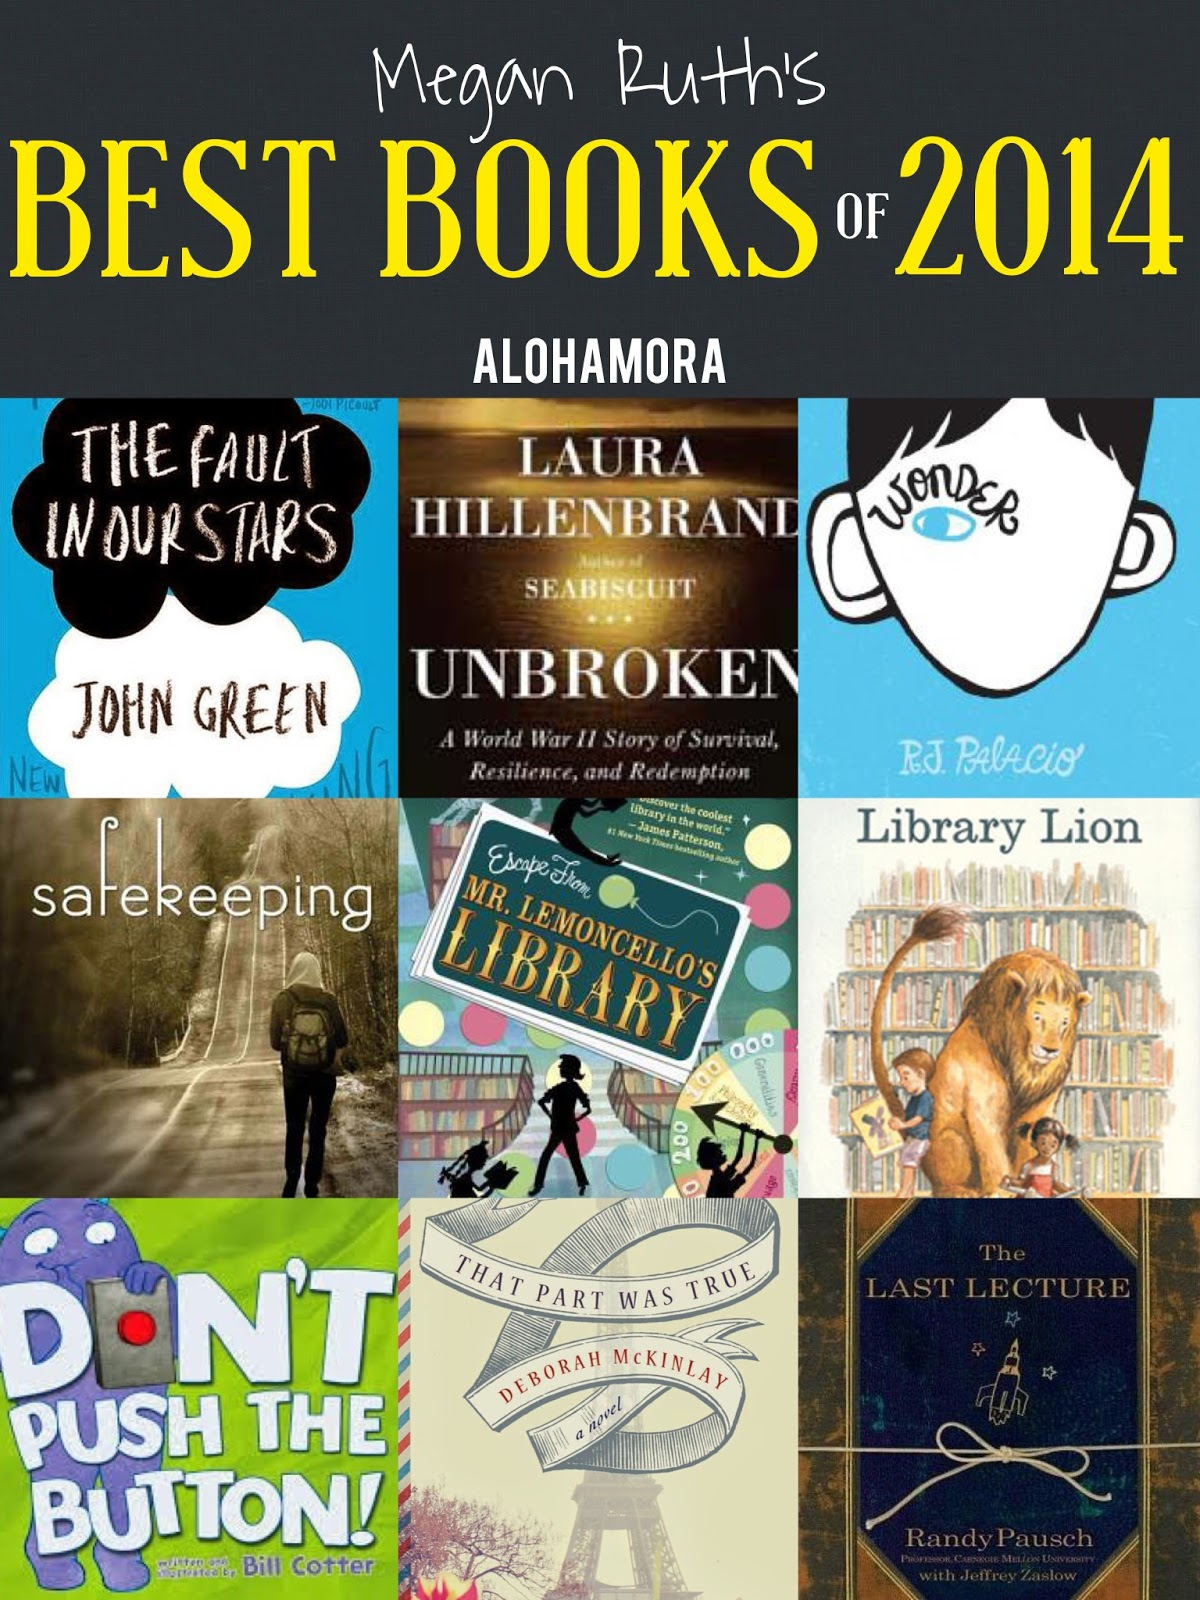 Best Books of 2014 according to Megan Ruth, a librarian, mom, and reading fanatic.  The very best books I read this year from picture books to childrens/juvenile literature, YA Literature/Teen Reads, Adult Literature, and Non-Fiction books. Funny, sweet, emotional, inspiring books. Alohamora Open a Book http://alohamoraopenabook.blogspot.com/